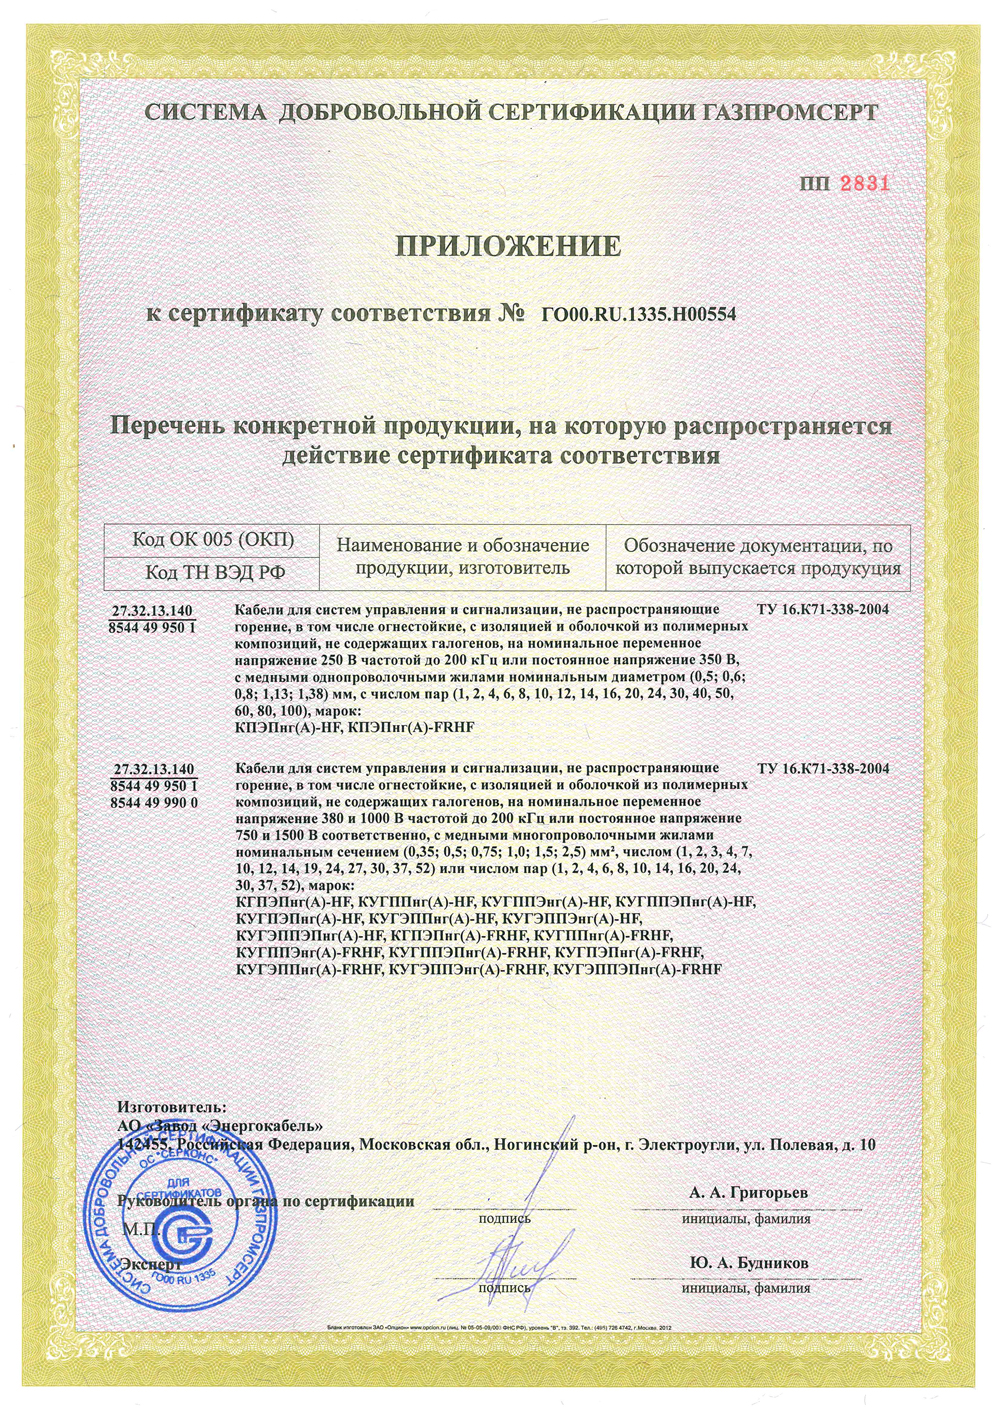 The appendix to the certificate of Conformity № ГО00.RU.1335.Н00554.